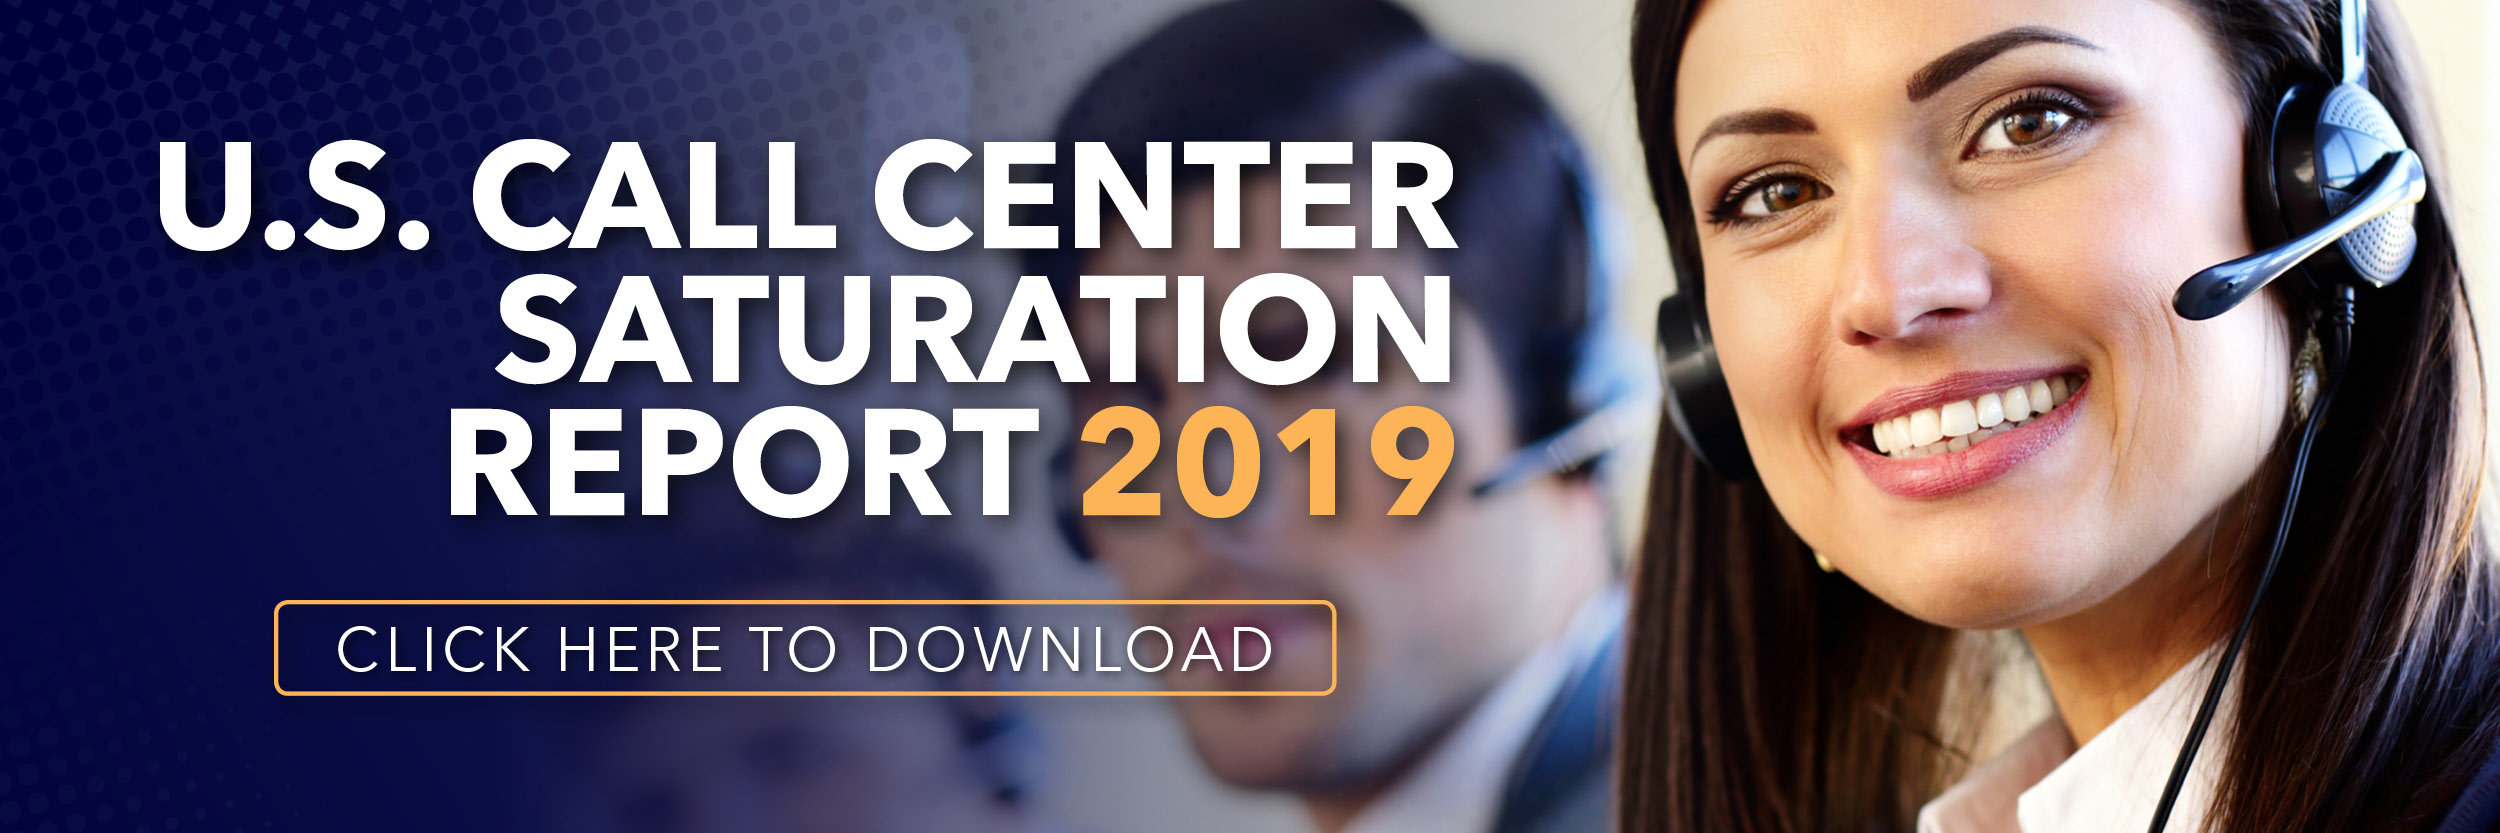 Call Center - Metro Areas with Greatest Saturation Blog April 2019-1